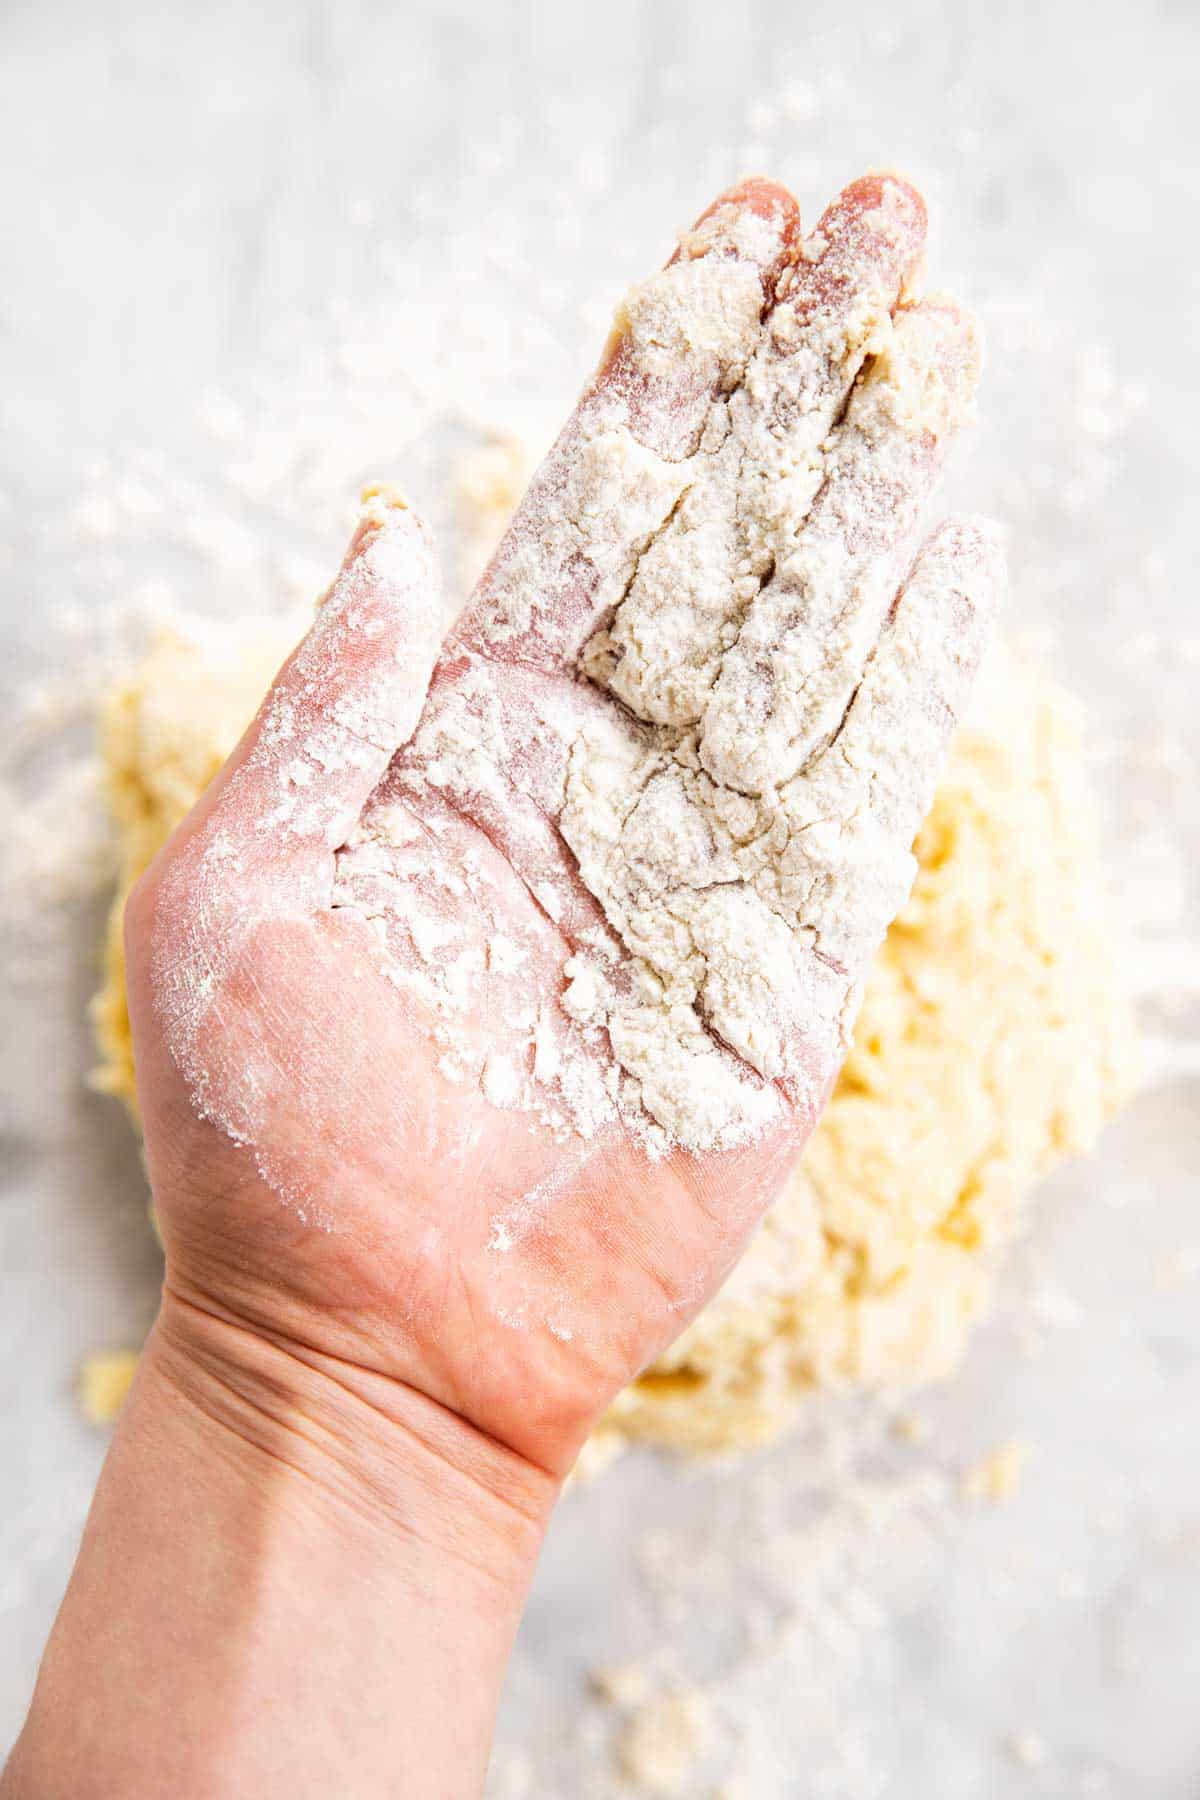 floured hand hovering over biscuit dough